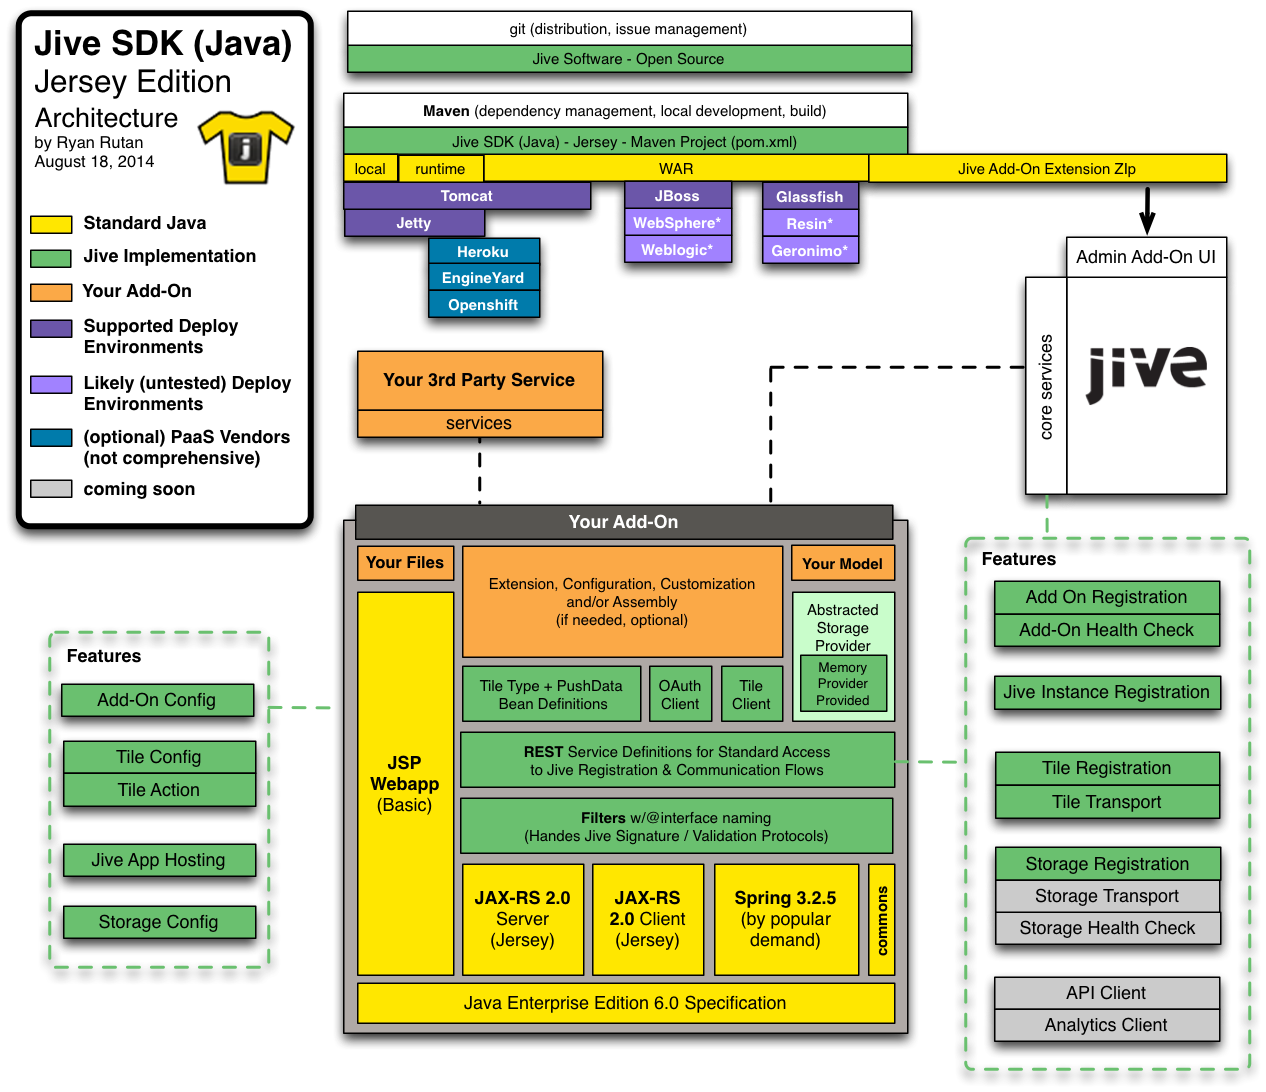 sdk-diagram.png?raw=true